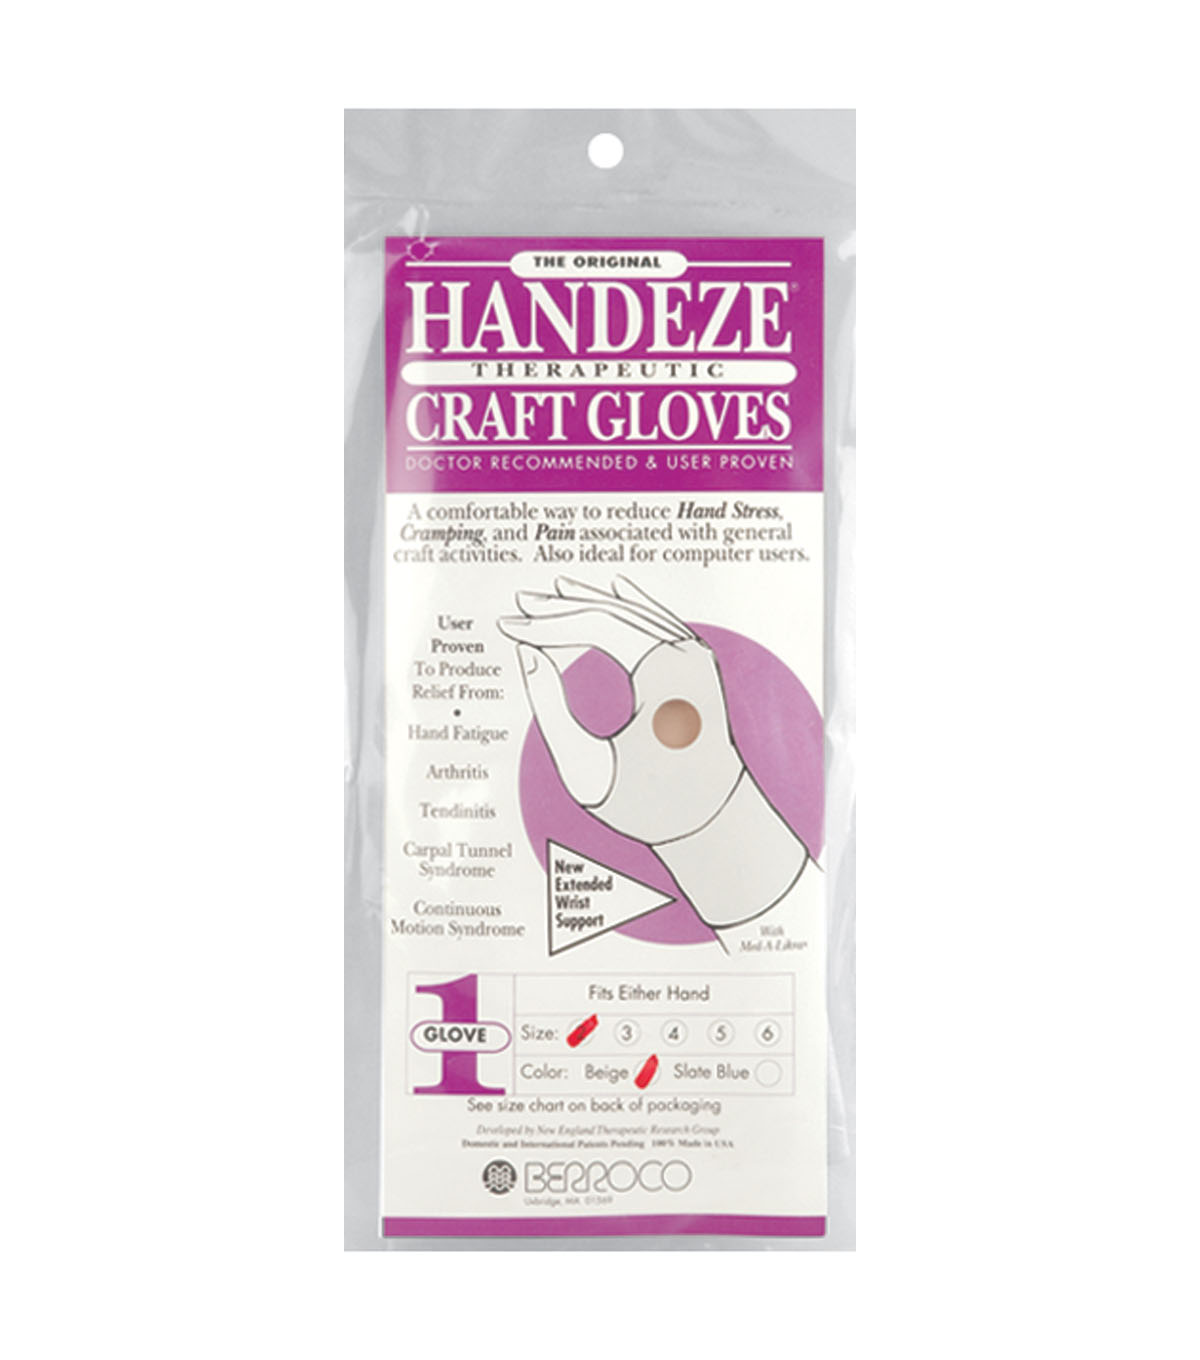 Handeze Therapeutic Craft Glove